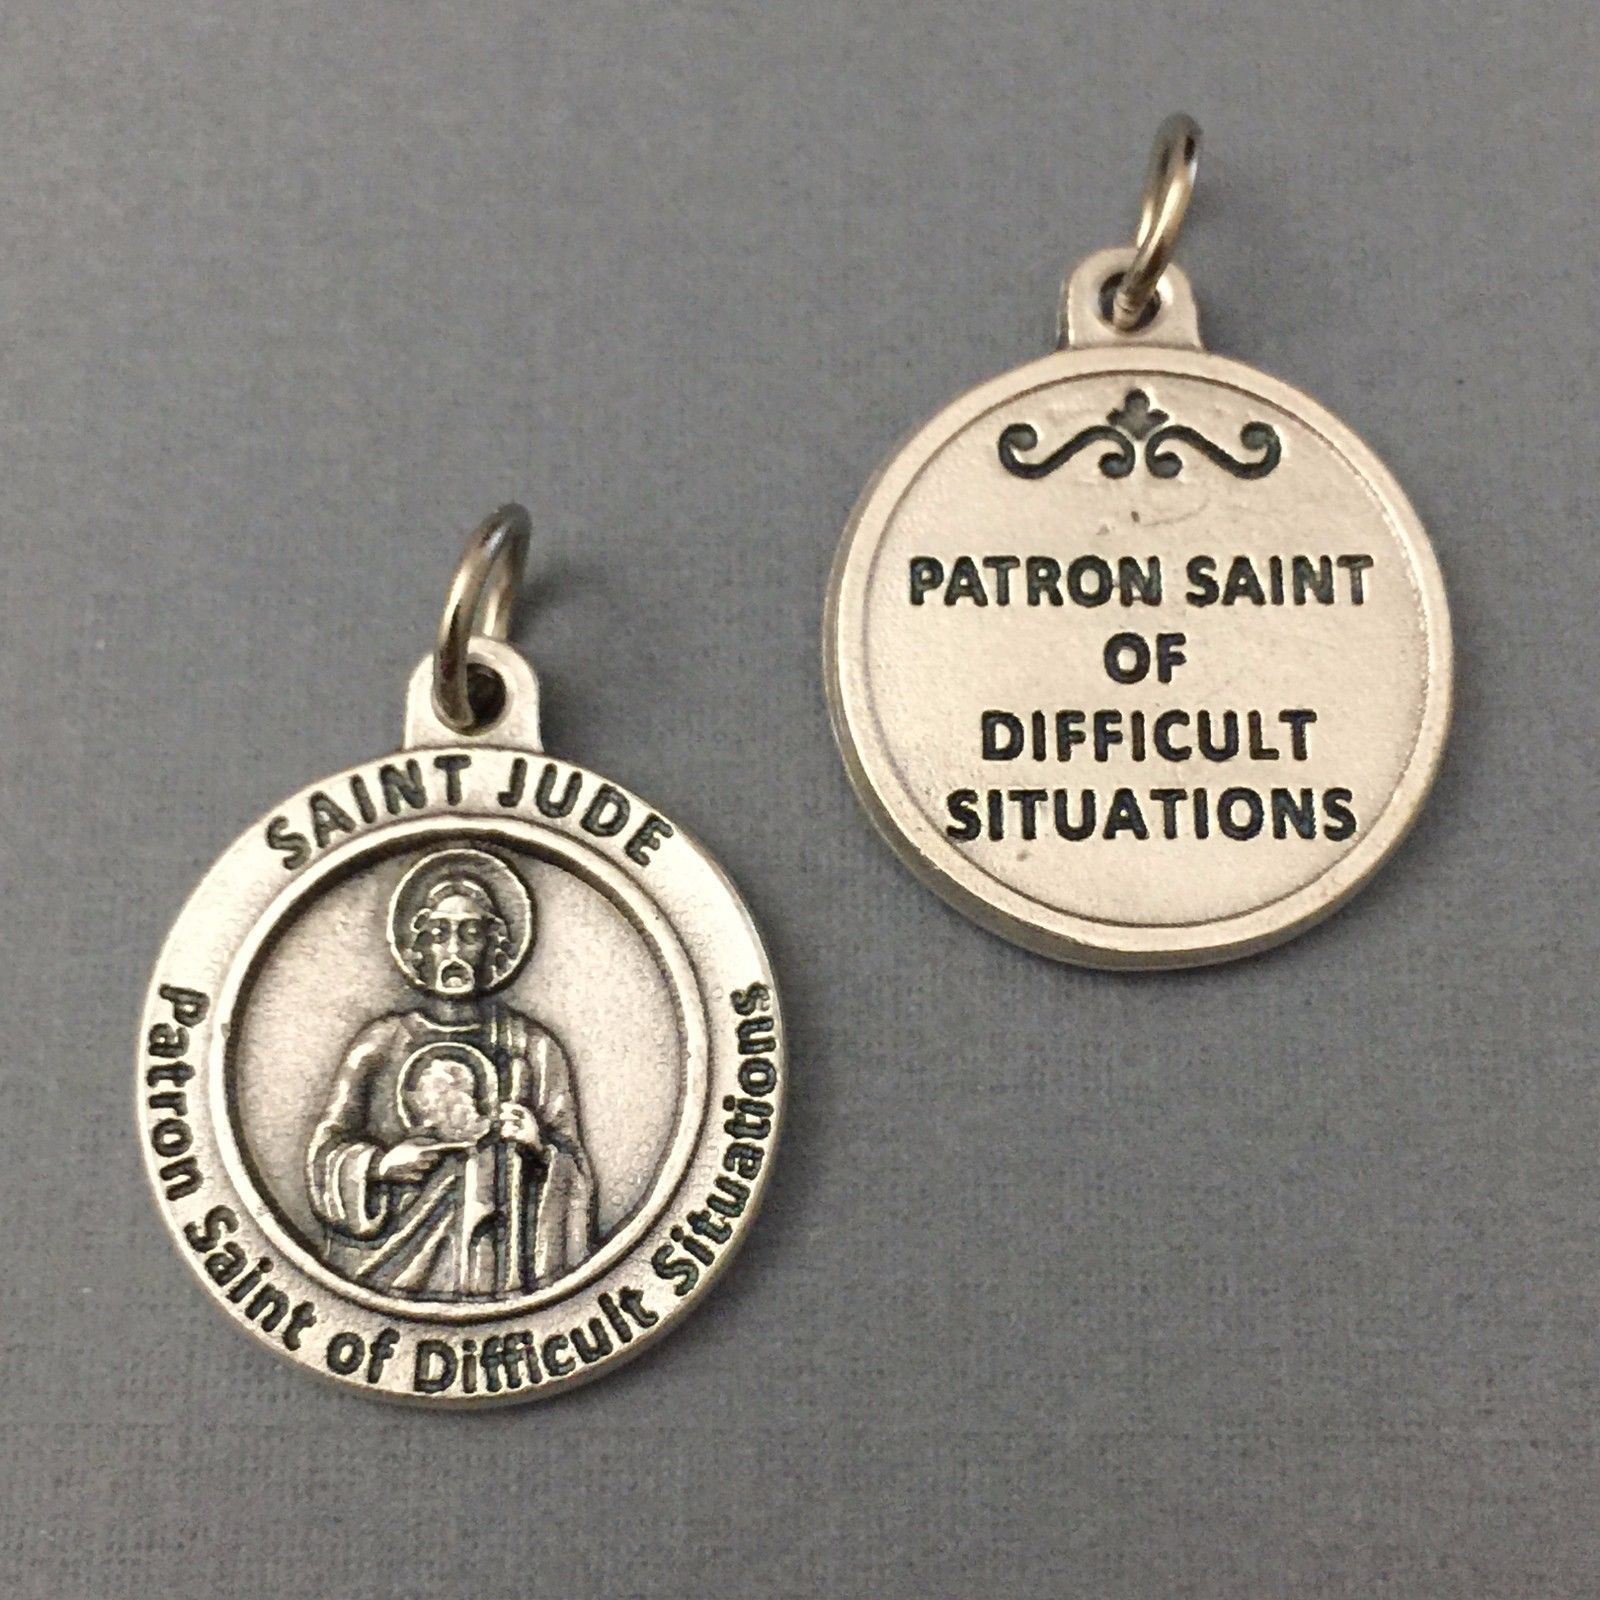 Saint Jude Patron of Difficult Situations Causes Medal Pendant Silver Tone 3/4""